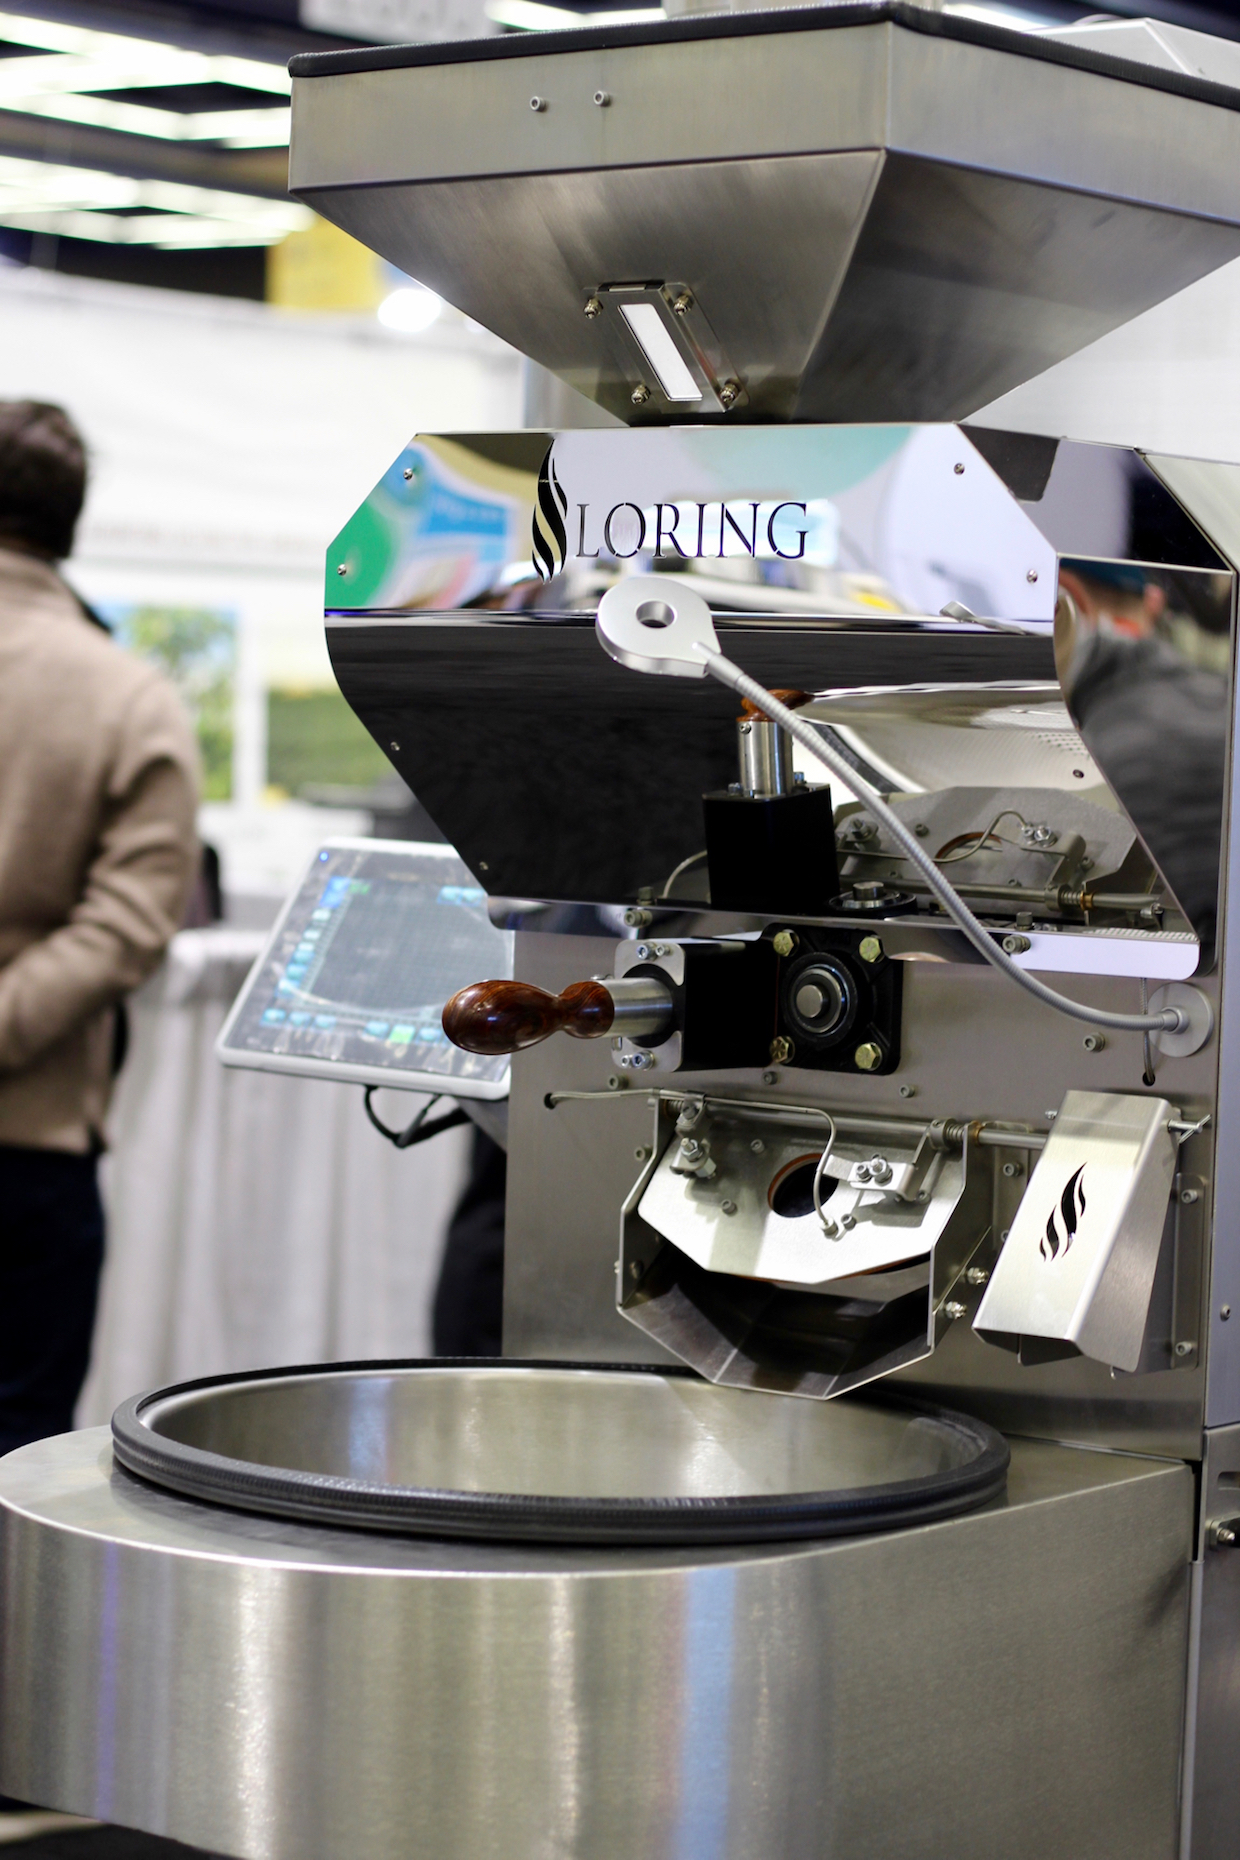 Loring Launches New Roast Profiling Software, Roast